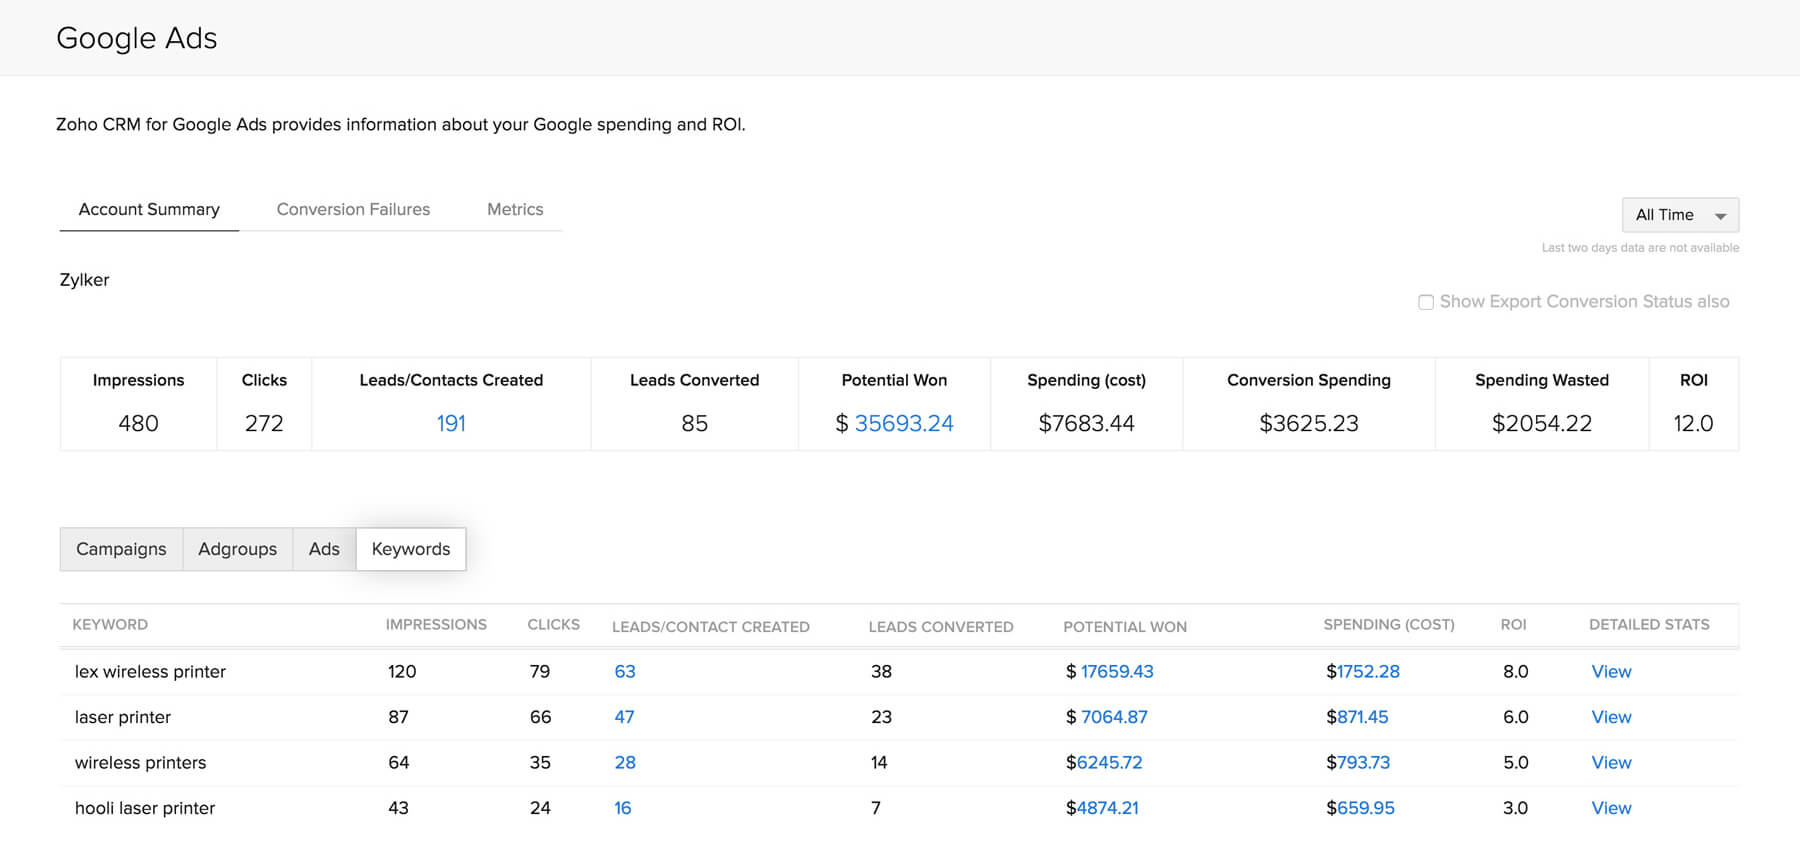 Find out the keyowrds that give you the most returns by integrating your CRM account to your Google Adwords account